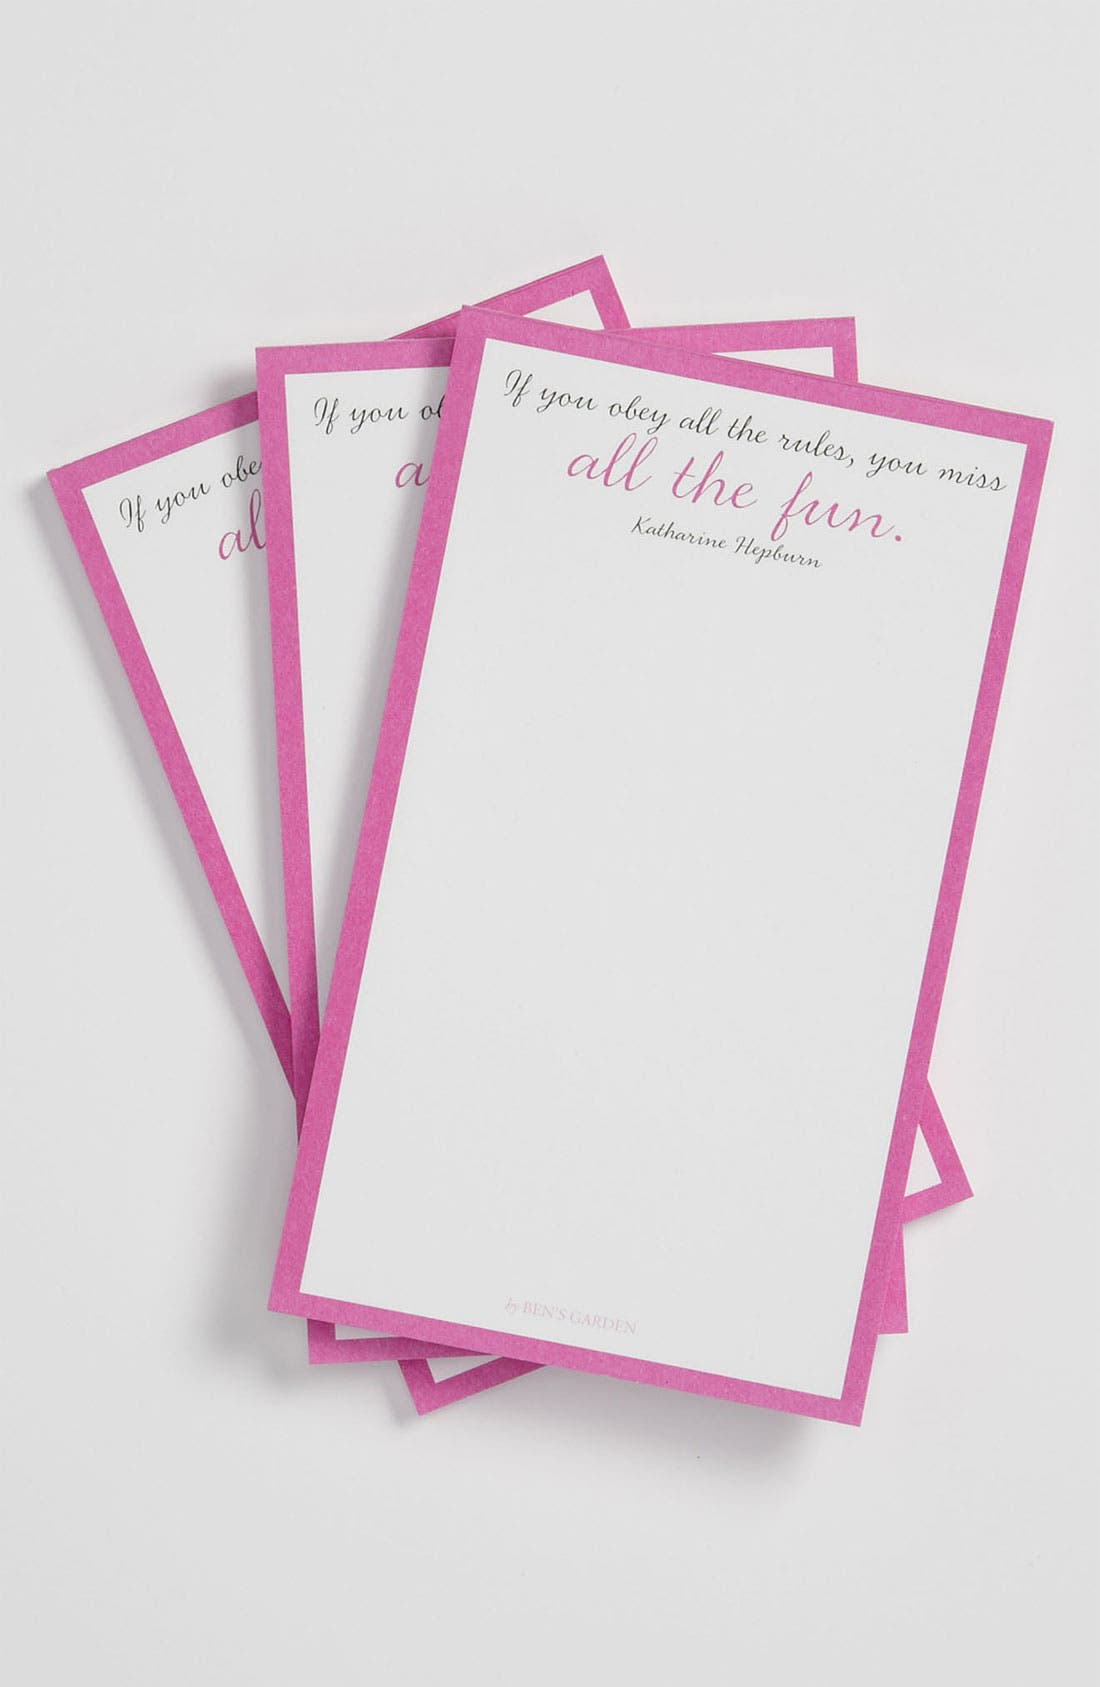 Alternate Image 1 Selected - Ben's Garden 'If You Obey All the Rules' Notepads (3-Pack)